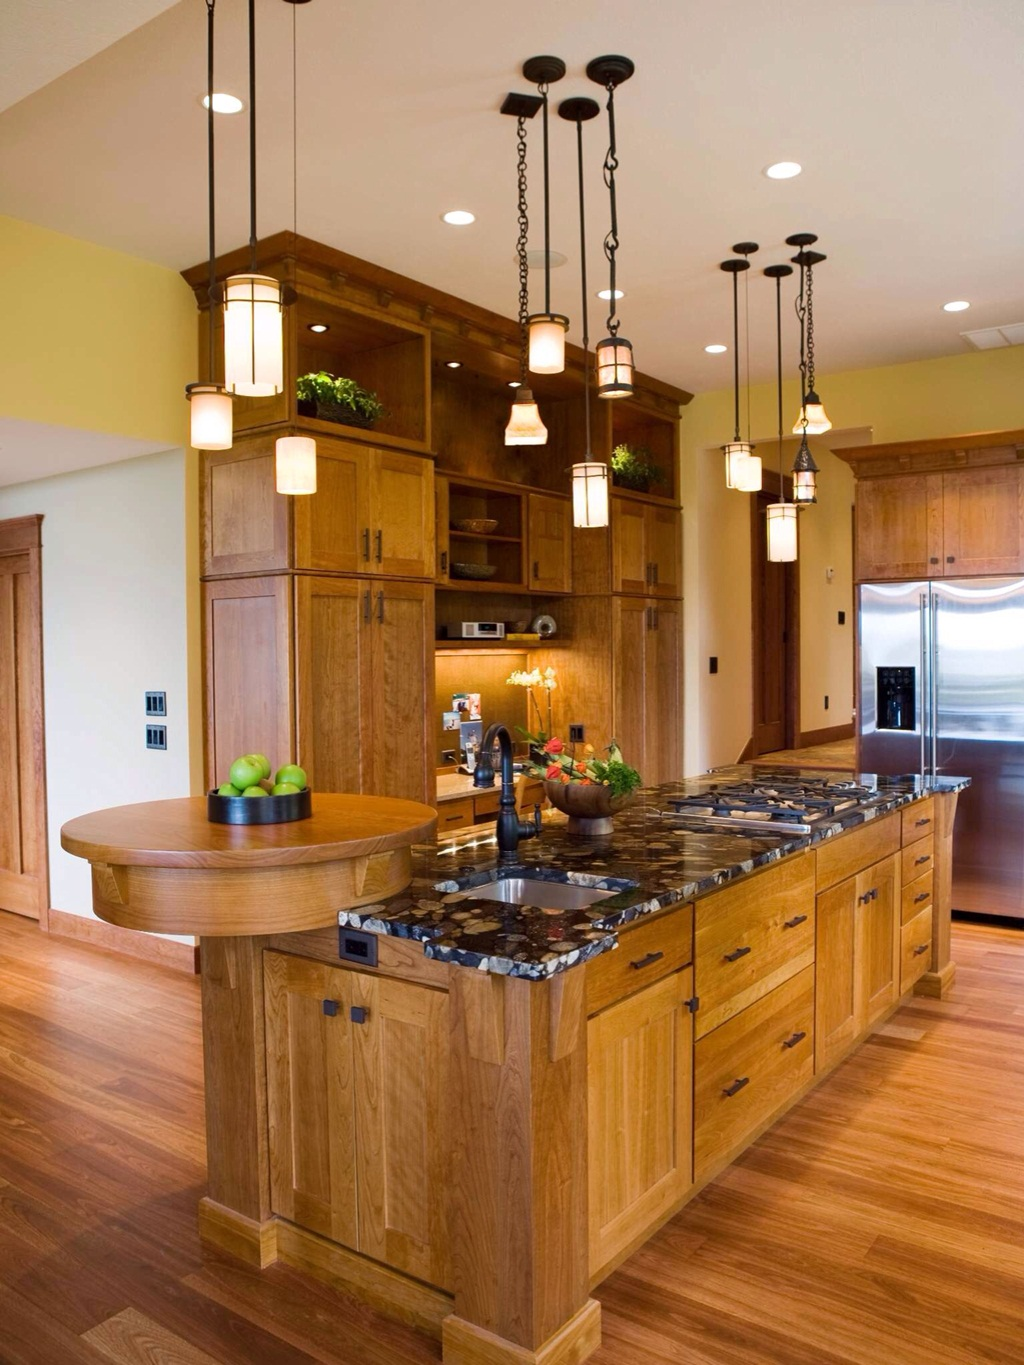 Mission Style kitchens